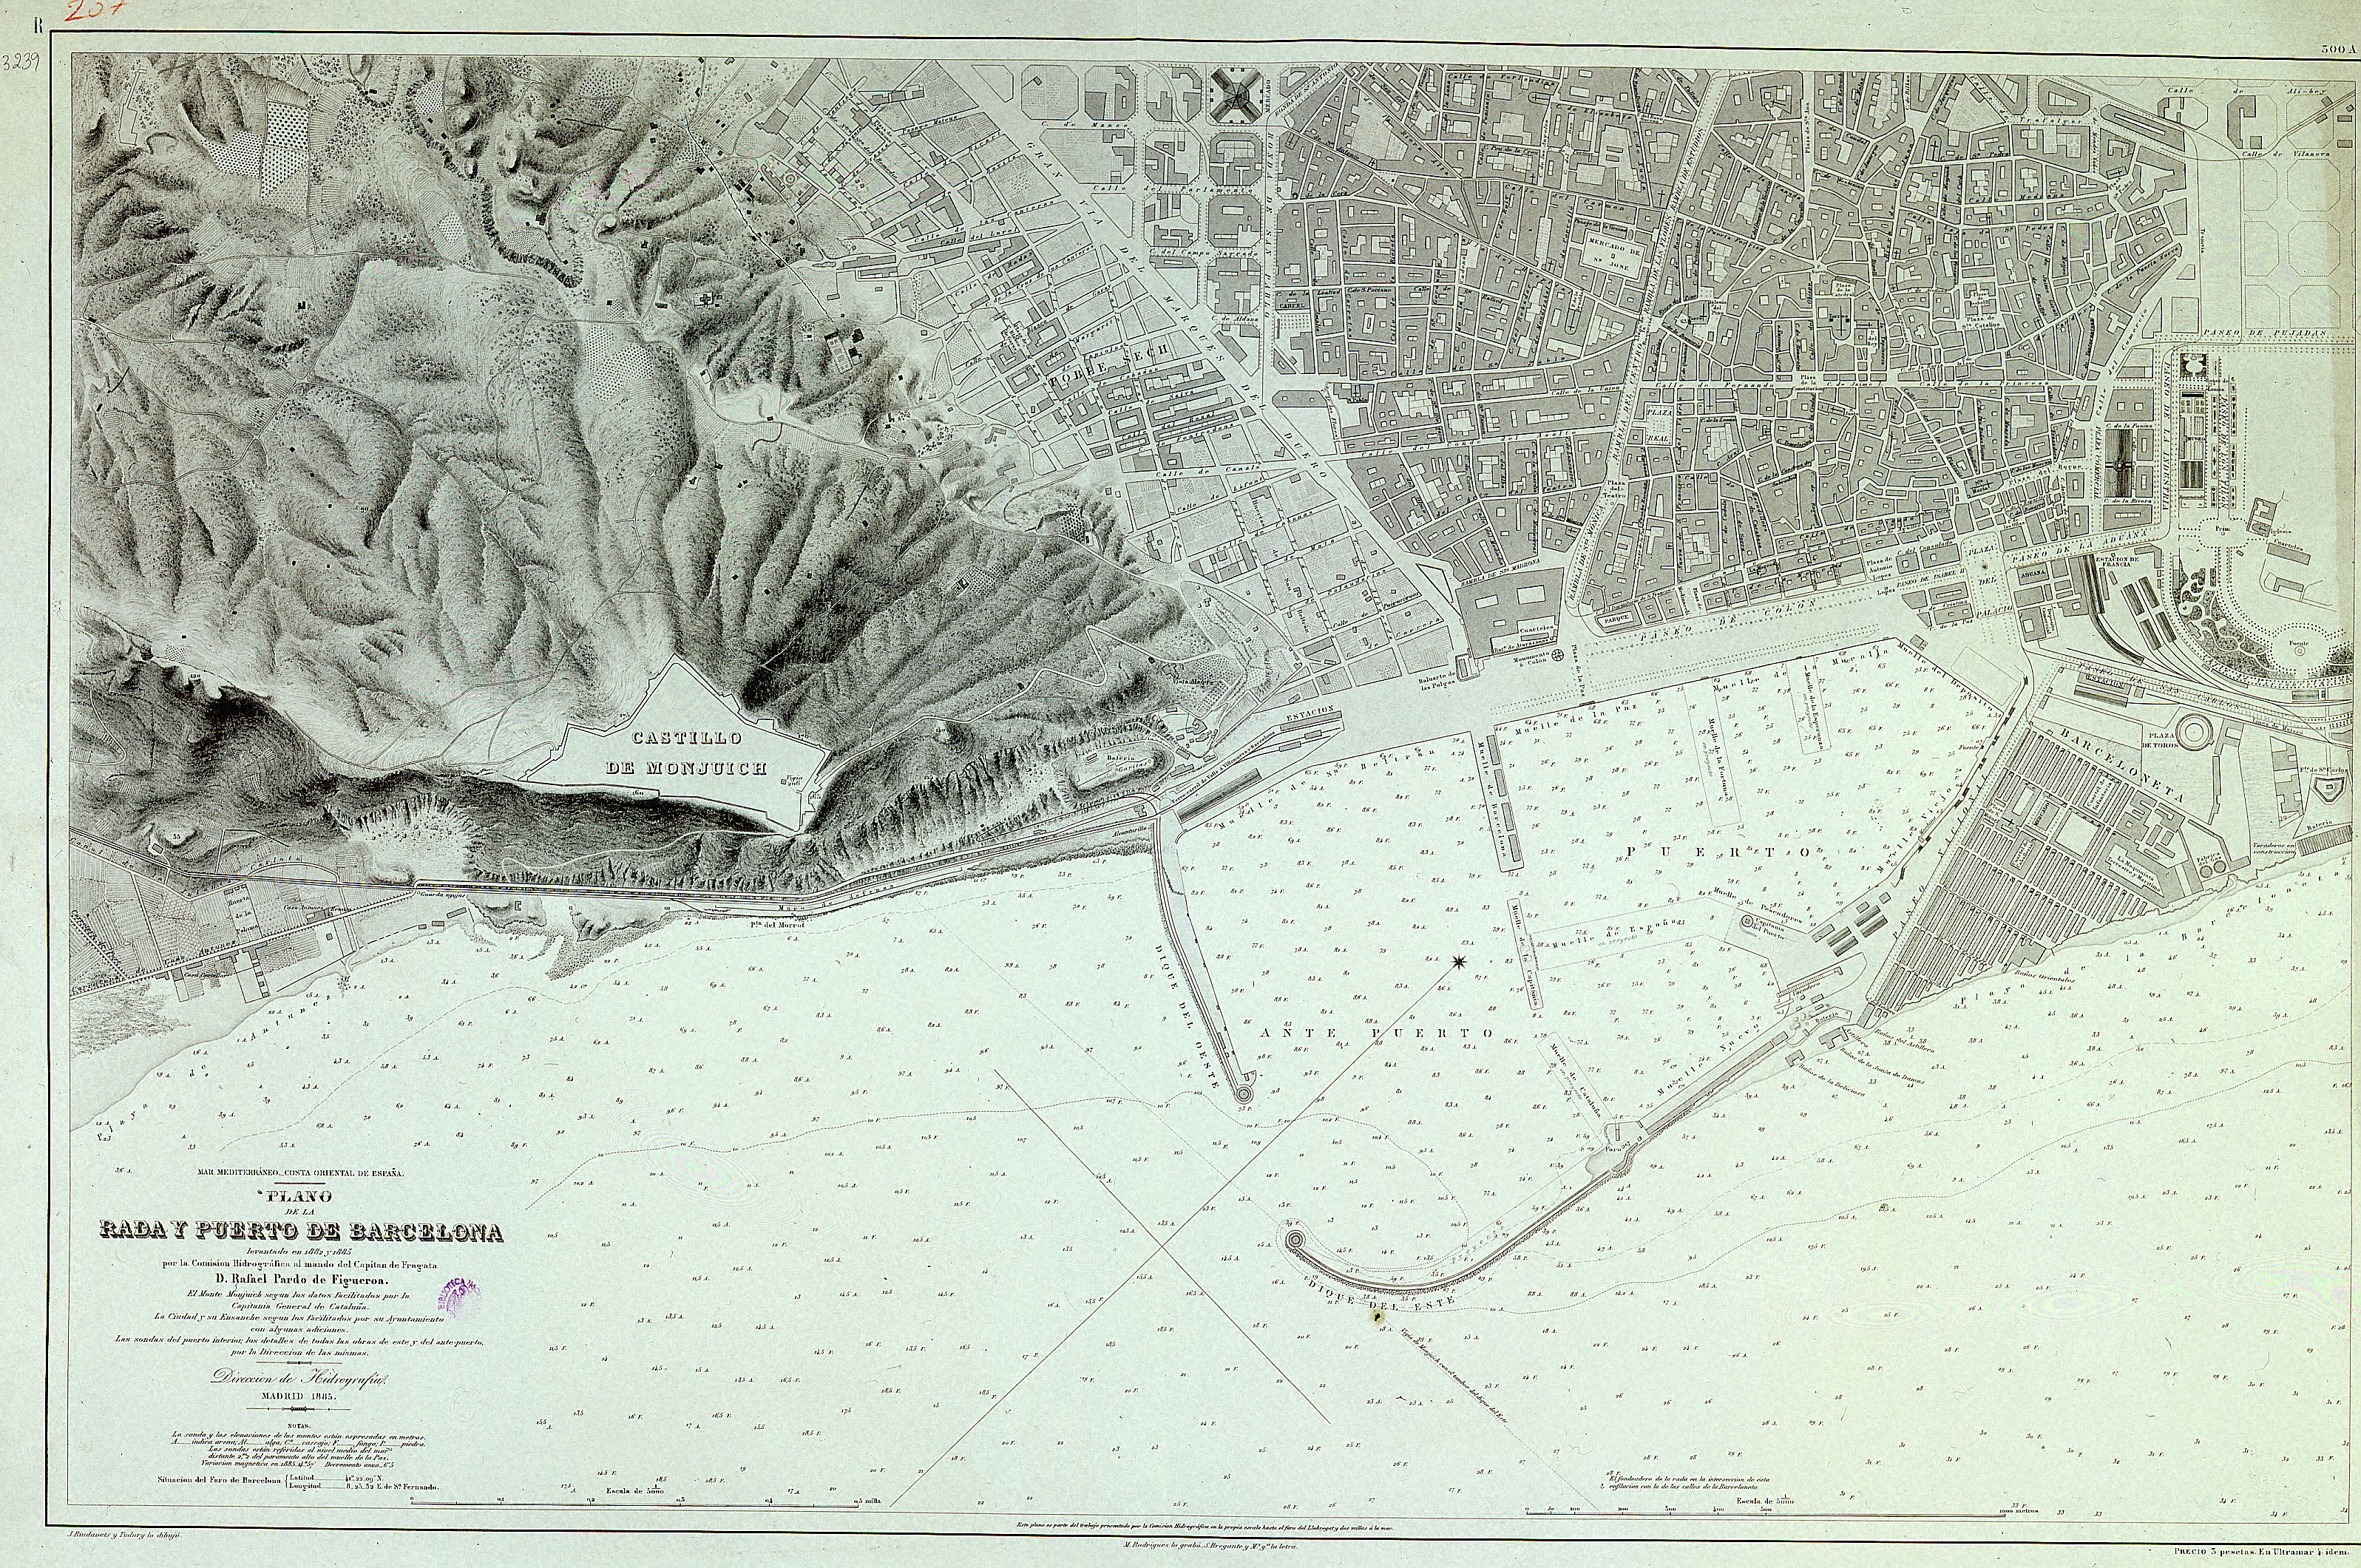 Map of the bay and port of Barcelona 1885